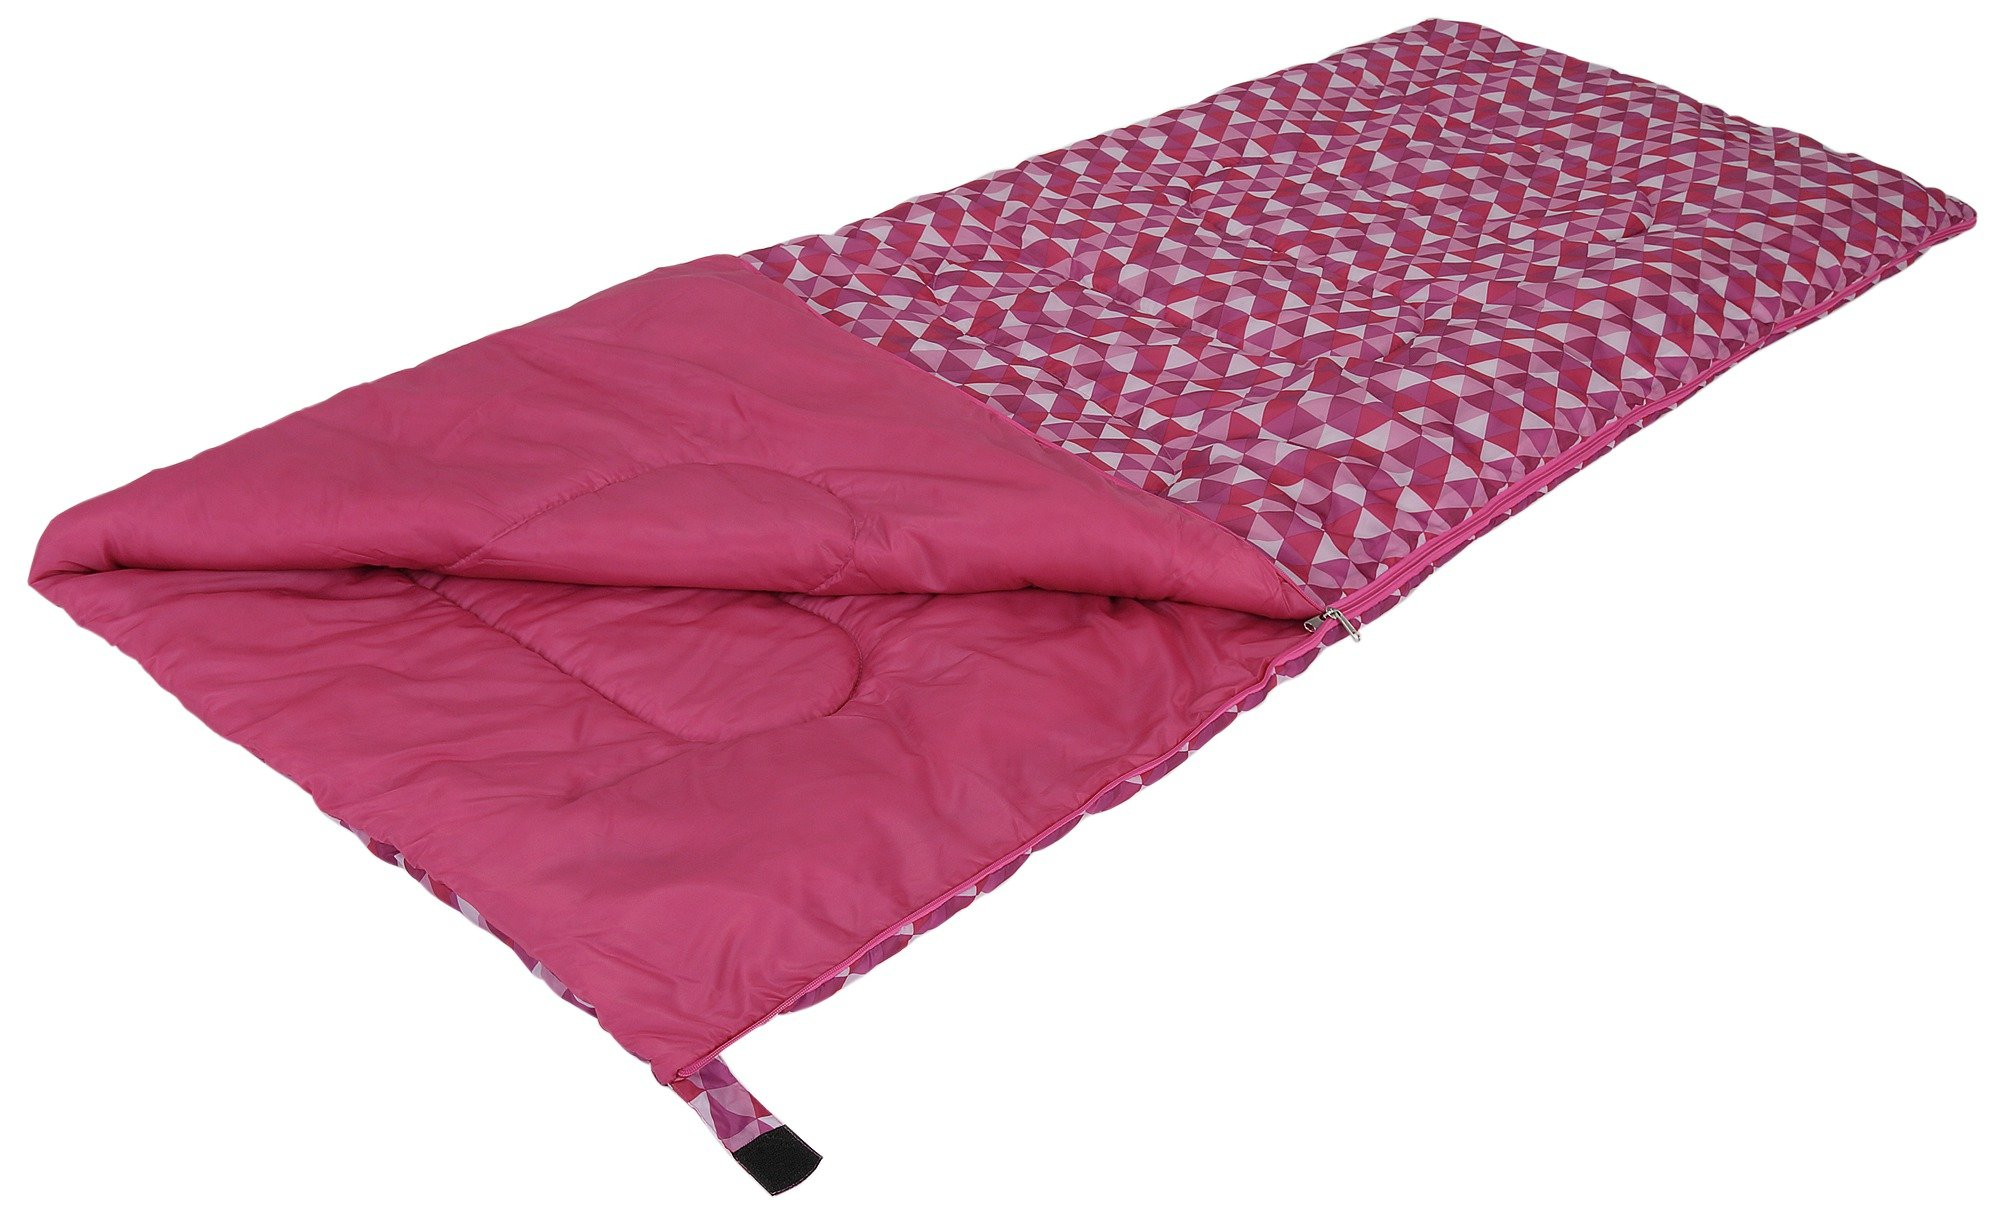 Proaction - Aztec 300GSM Sleeping Bag - Pink lowest price